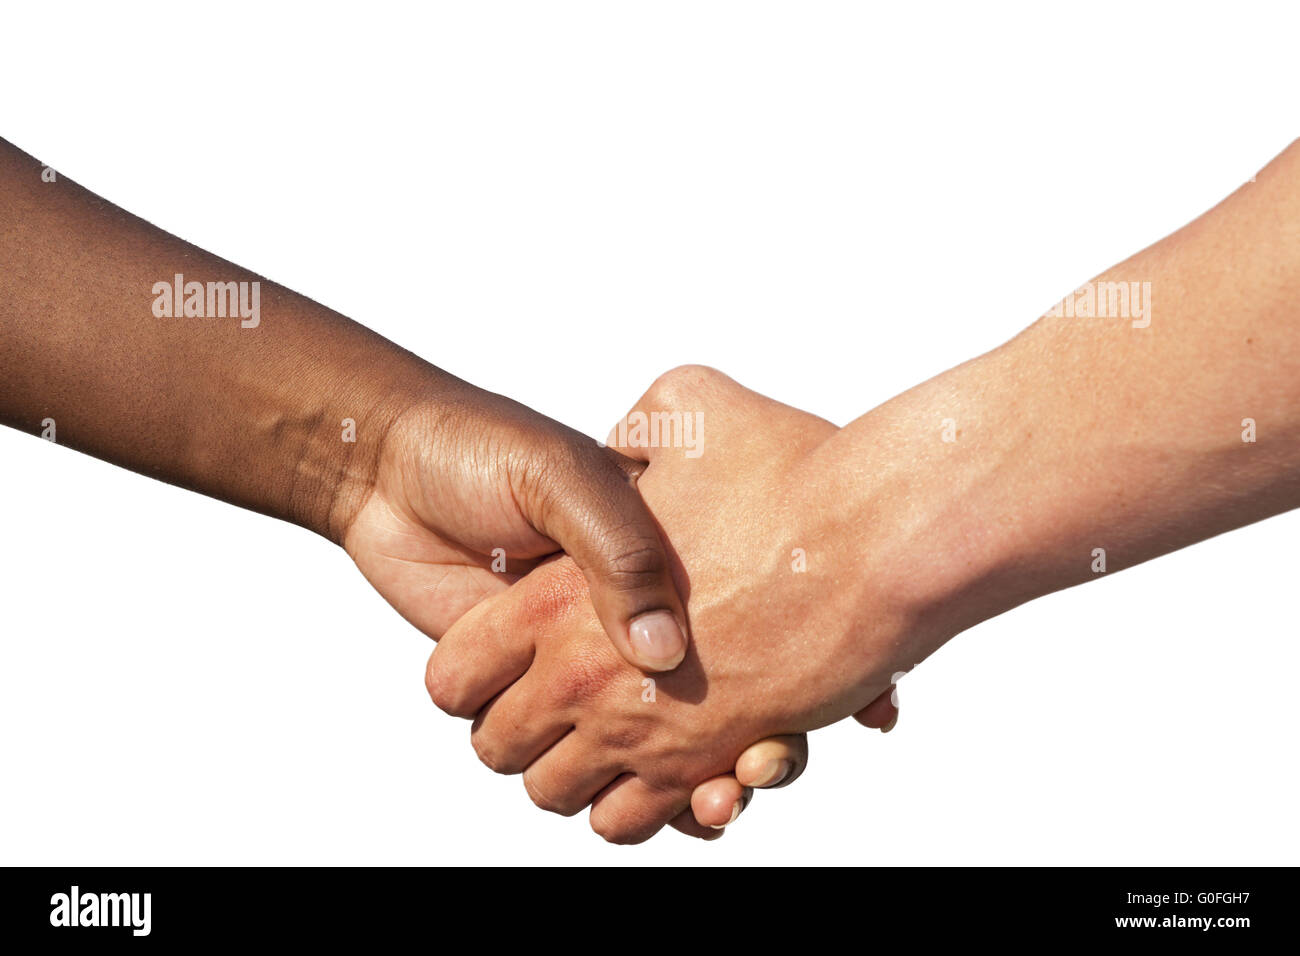 Handshaking - Stock Image